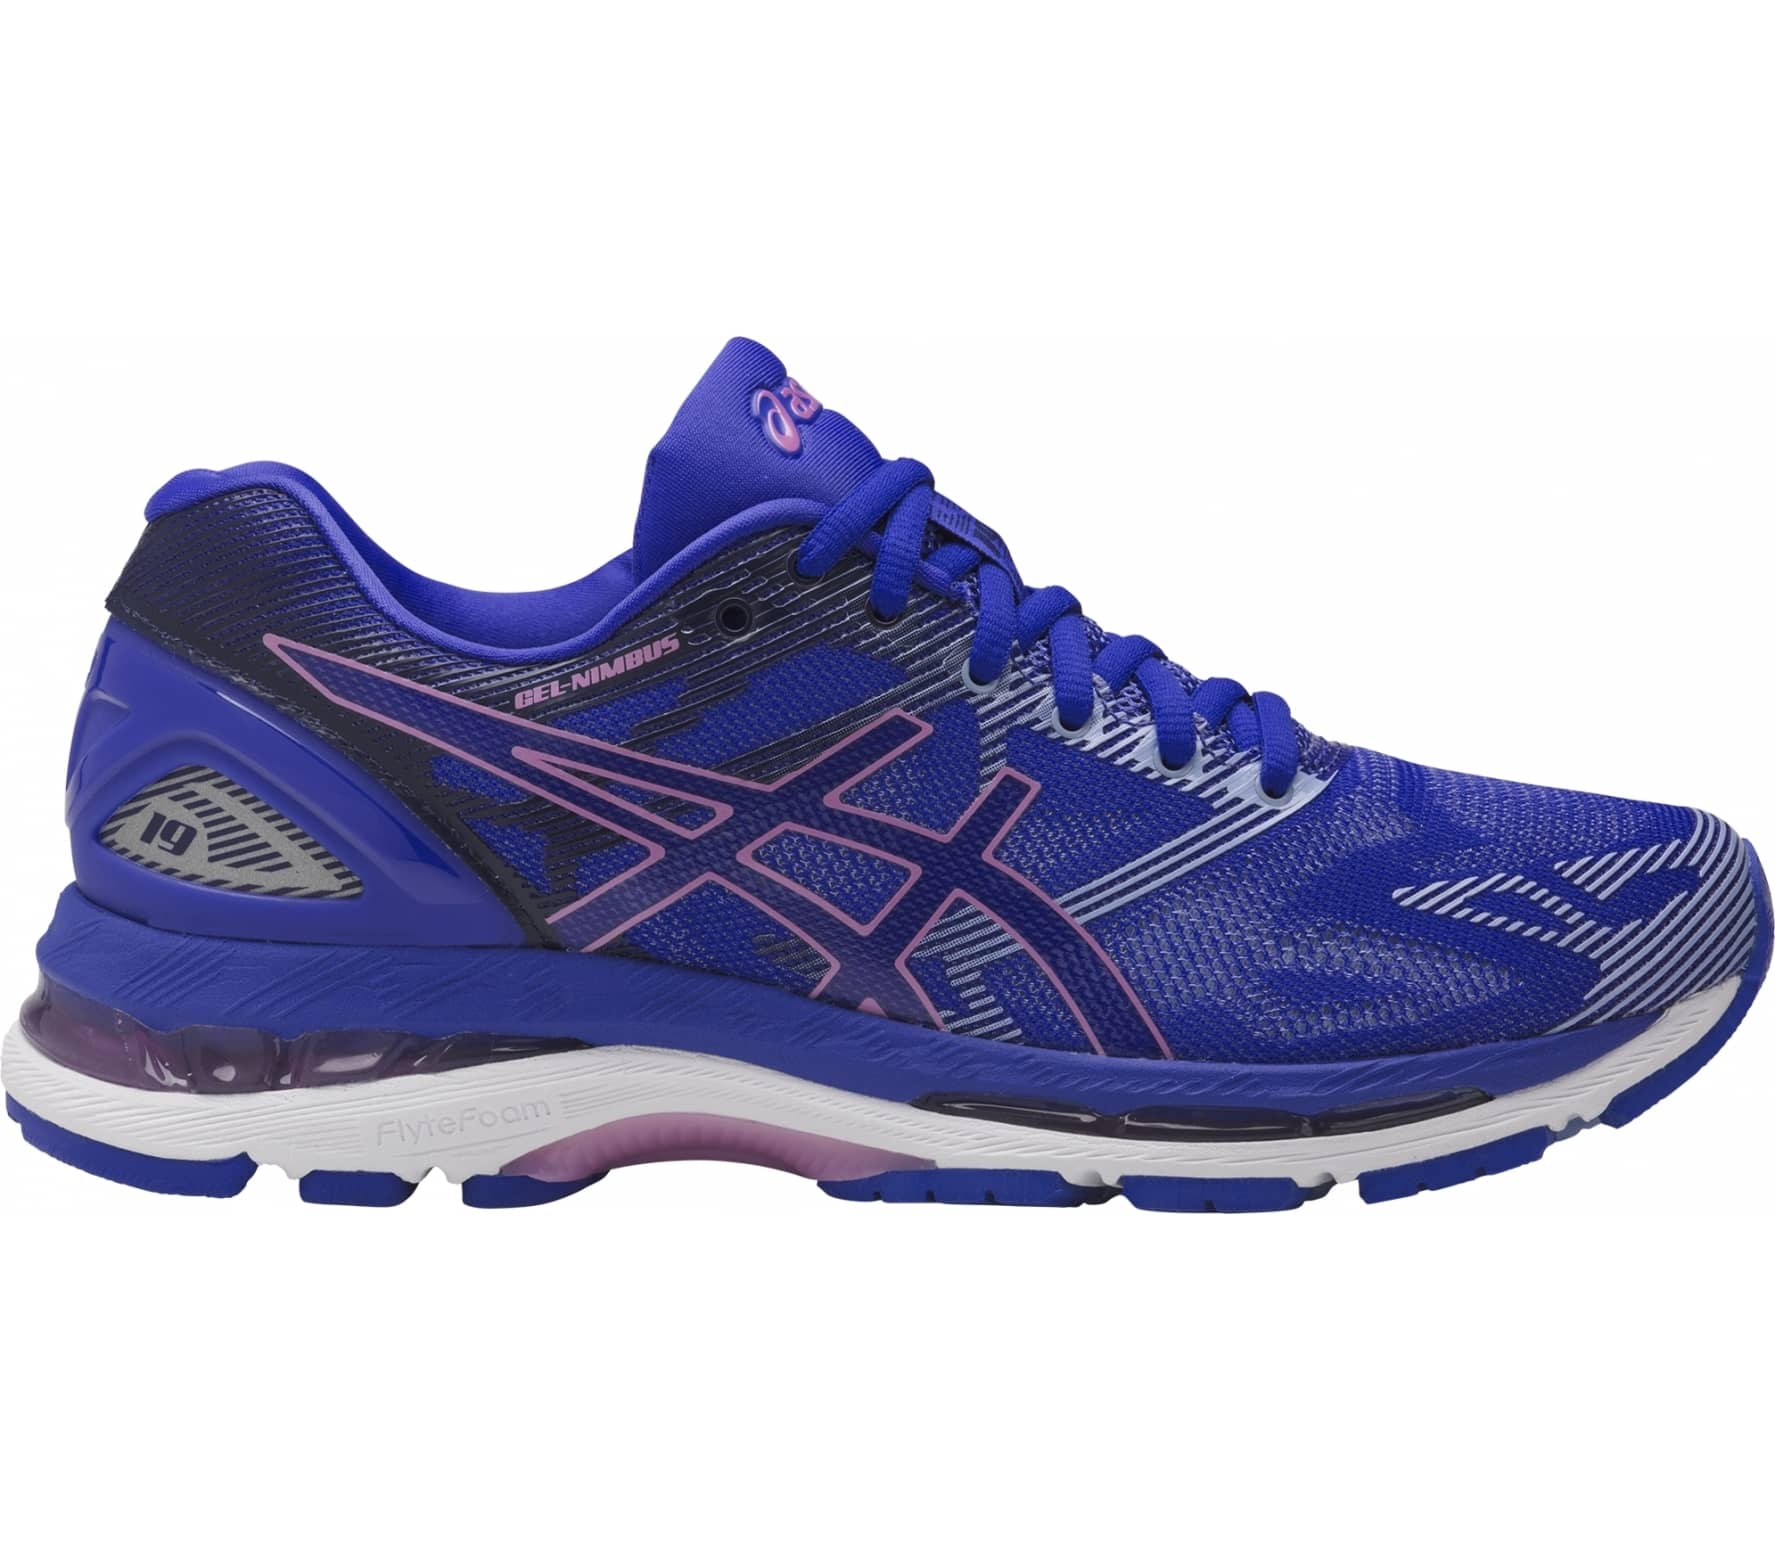 size 40 4be0b 78f56 ASICS Gel-Nimbus 19 Women